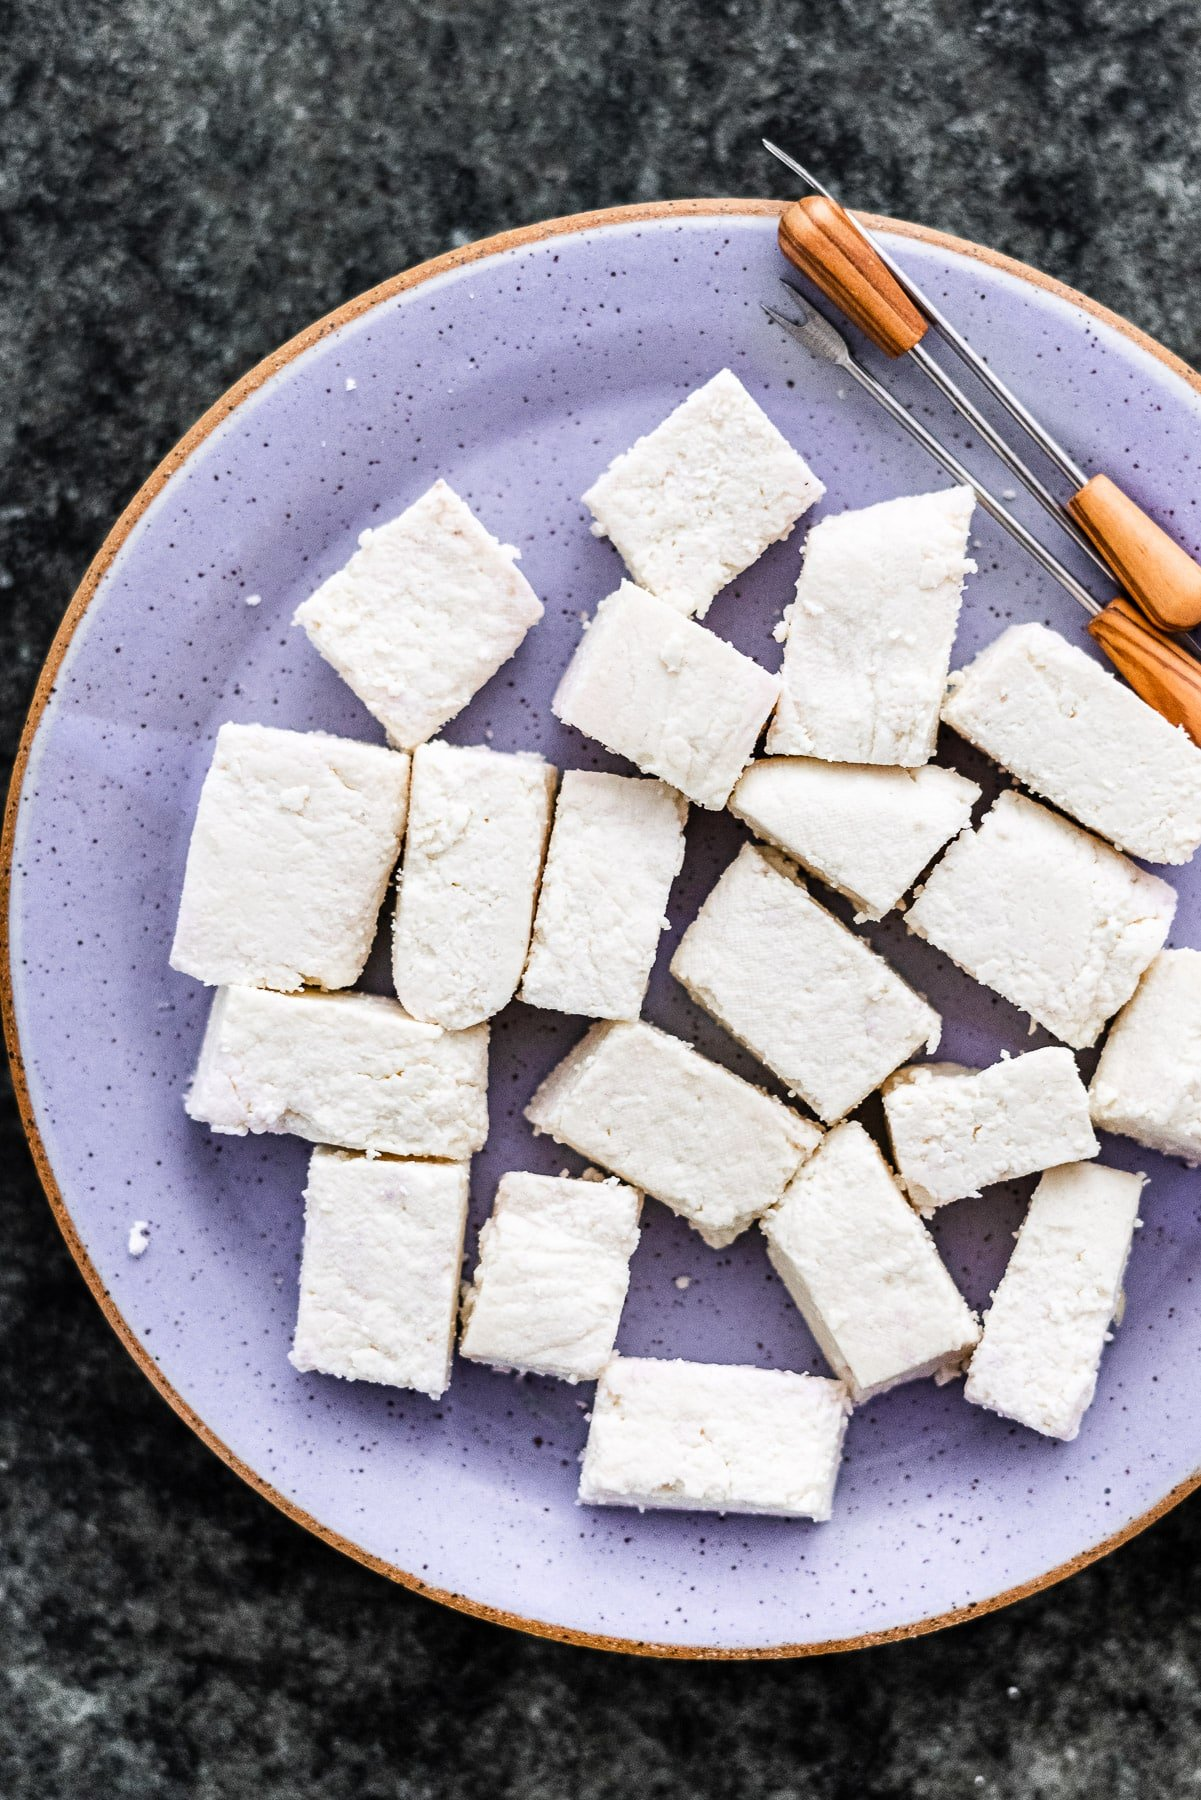 homemade paneer cut up in rectangles on a plate with appetizer picks